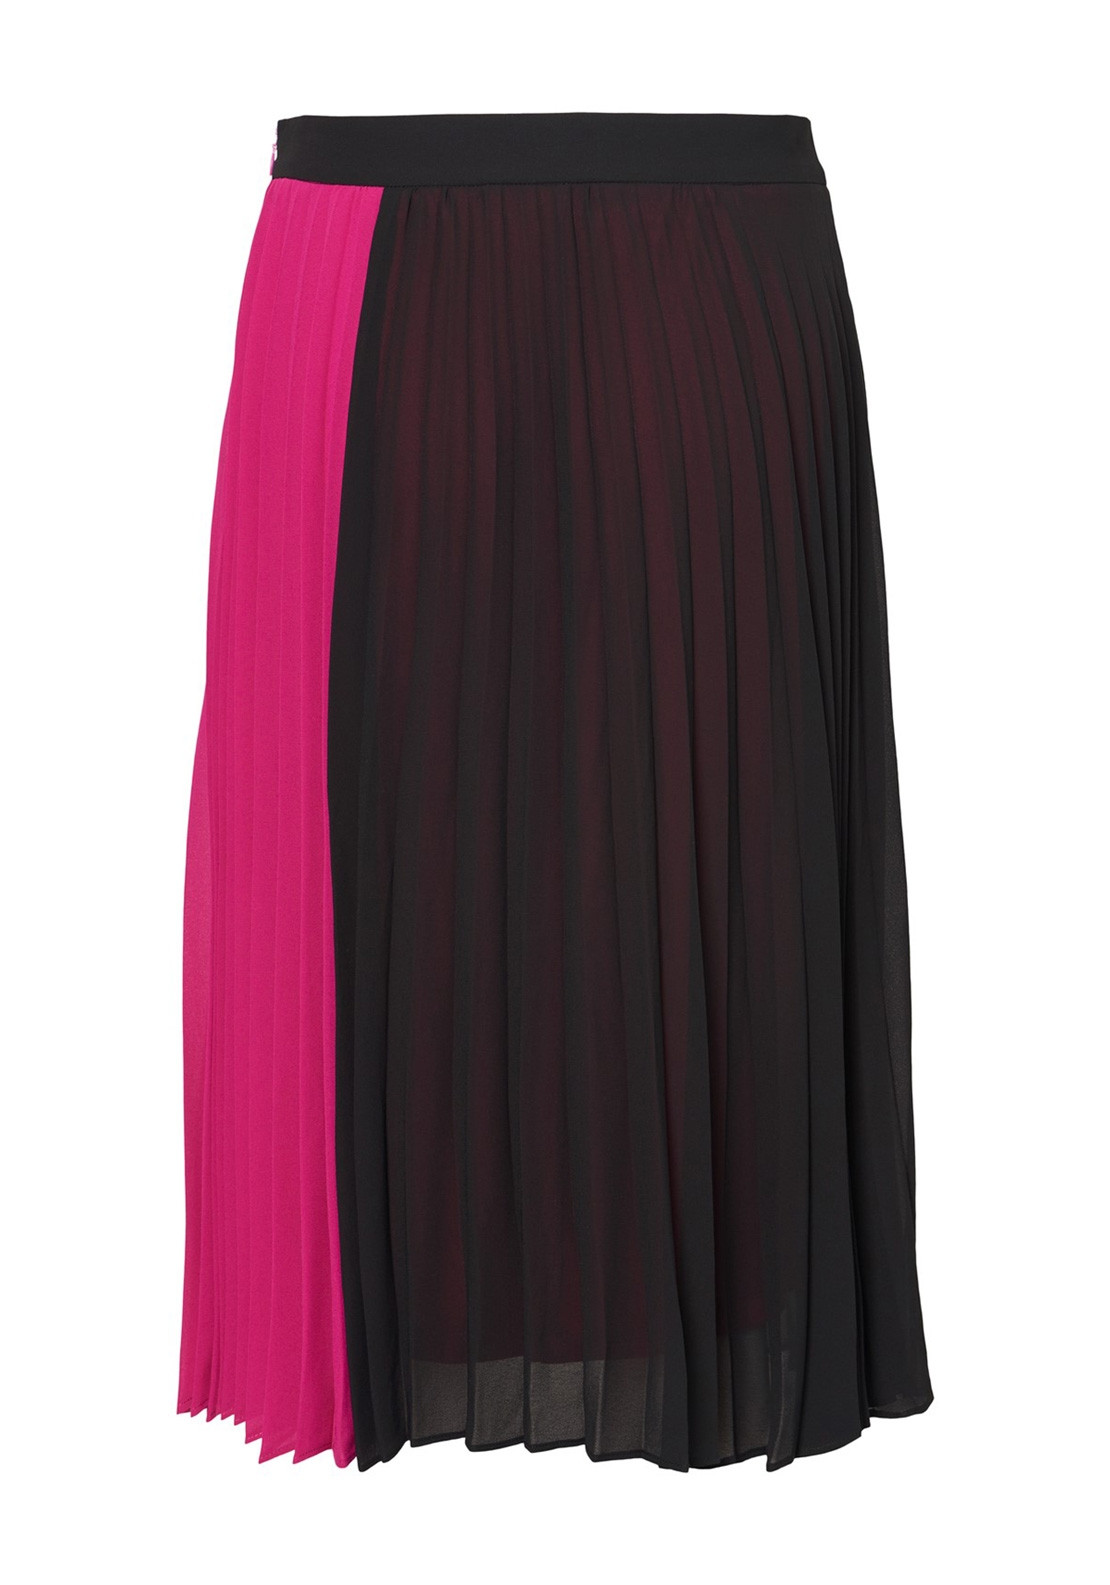 8d6983242c Vero Moda Sol Pleated Midi Skirt, Black and Pink | McElhinneys